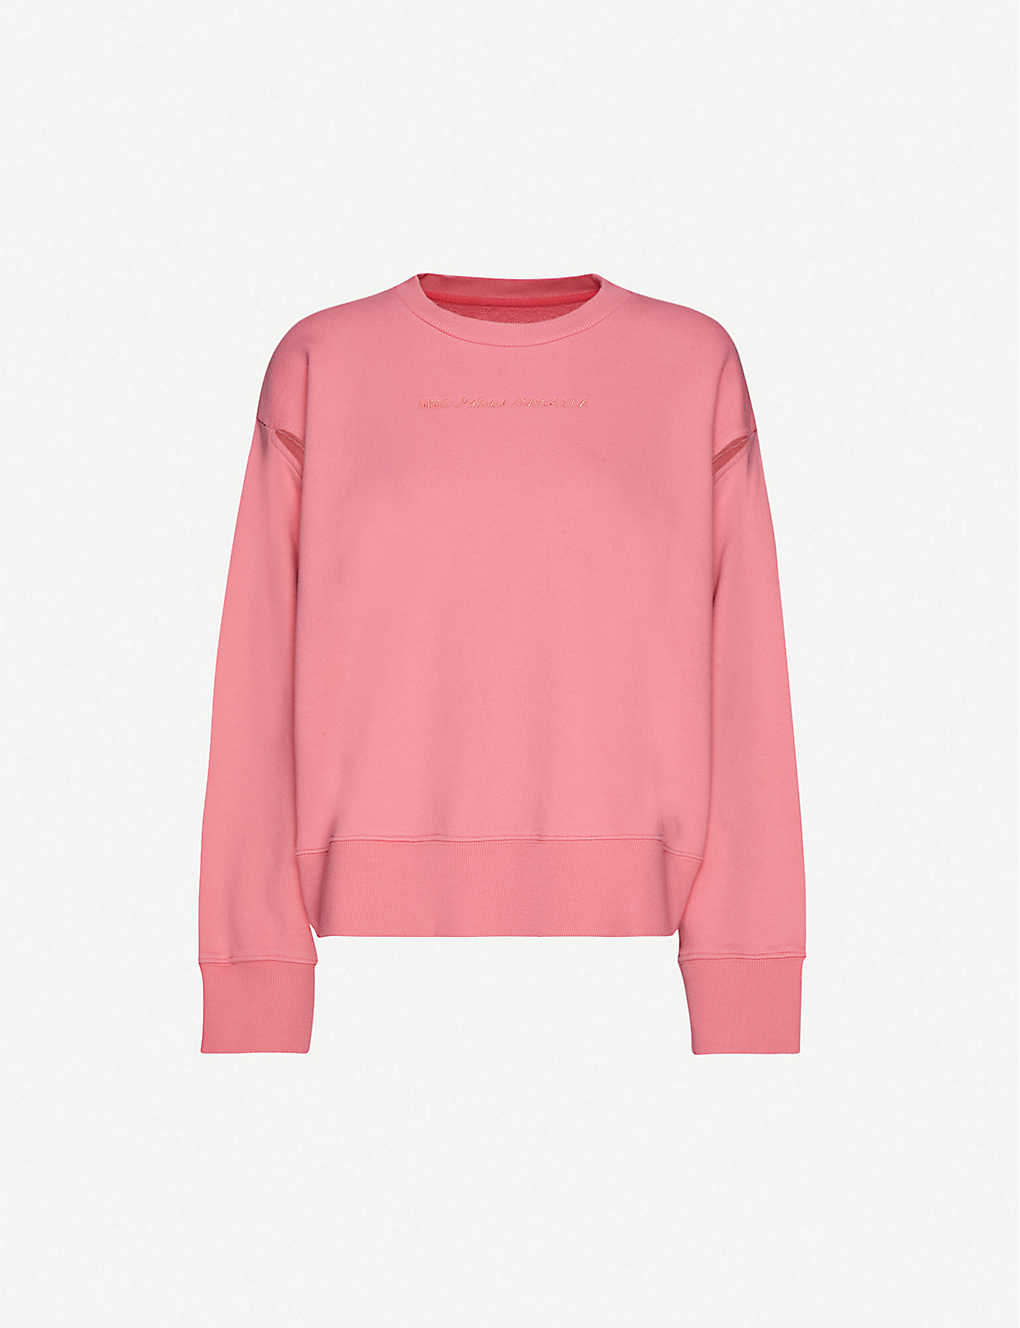 MM6 MAISON MARGIELA: Cut-out cotton-jersey sweatshirt